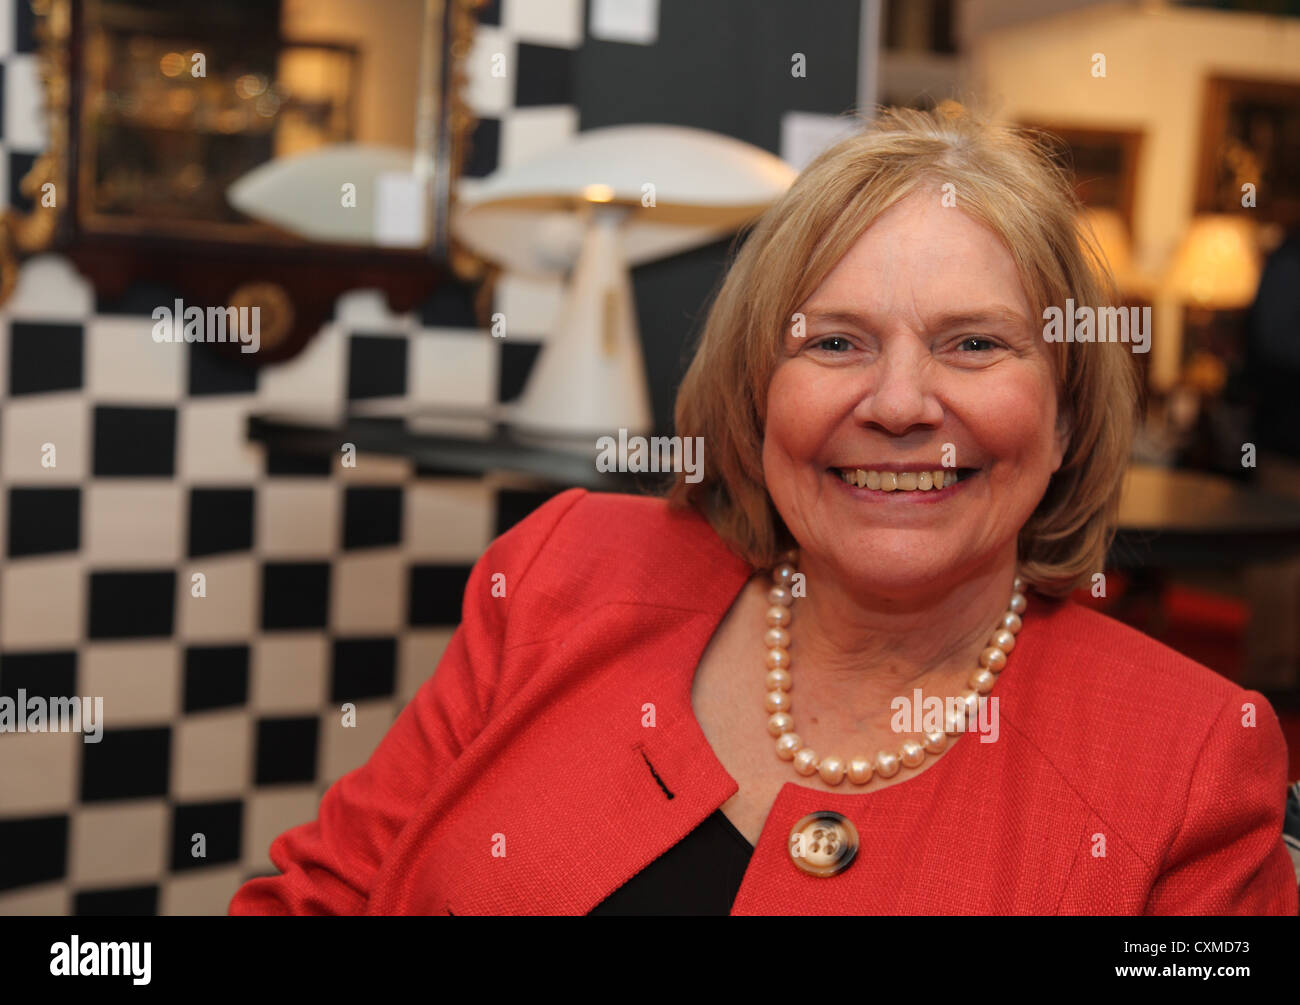 Antiques expert, author and TV personality Judith Miller at the Irish Antique Dealers Association Annual Fair, Dublin, - Stock Image